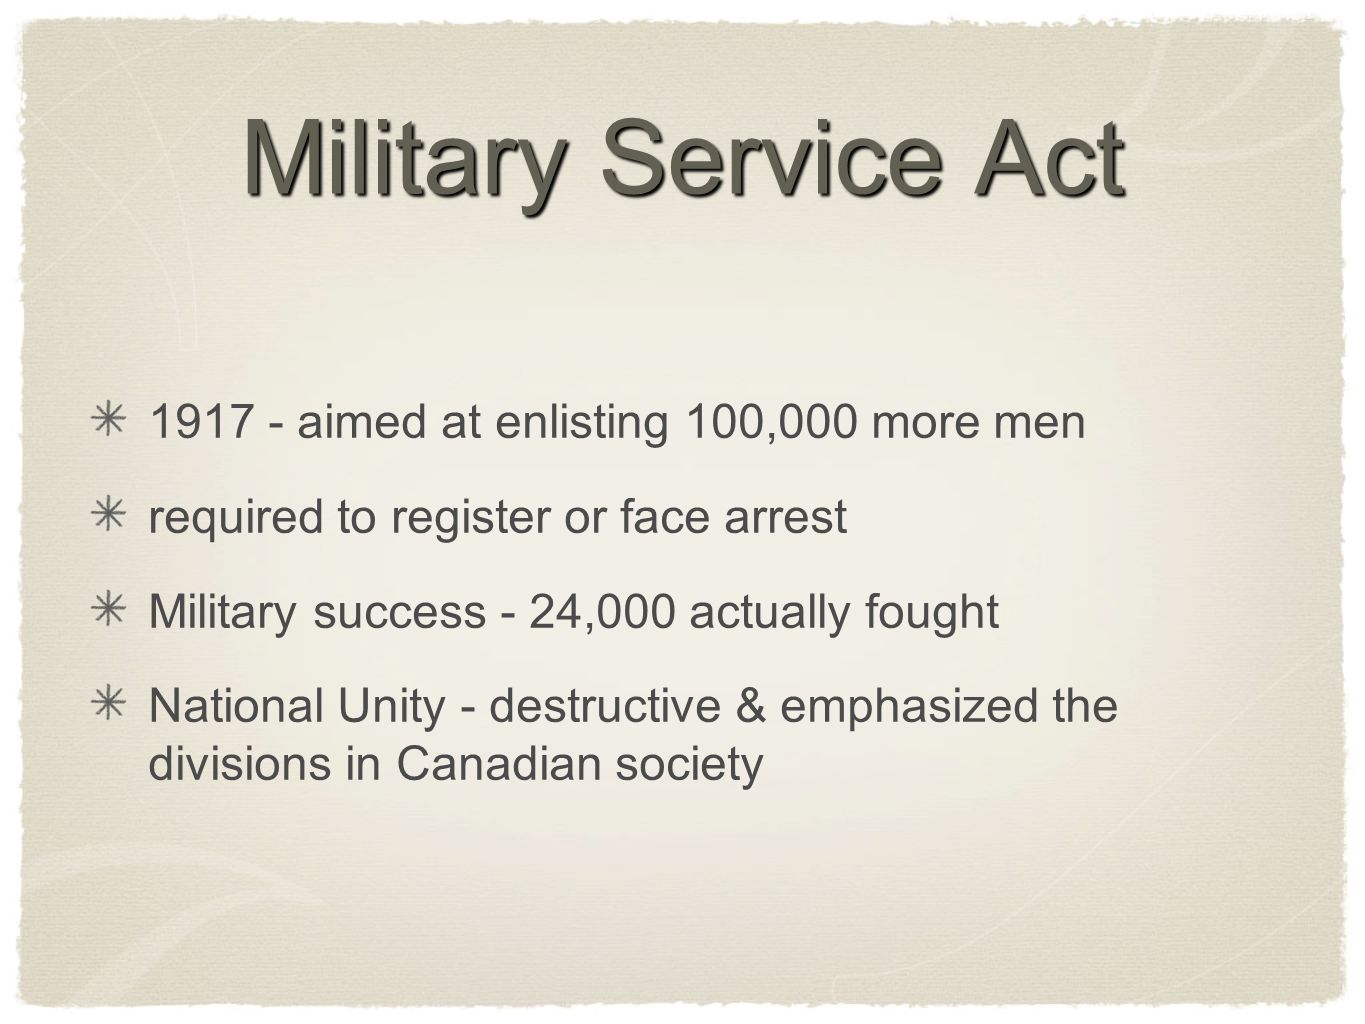 Military Service Act 1917 - aimed at enlisting 100,000 more men required to register or face arrest Military success - 24,000 actually fought National